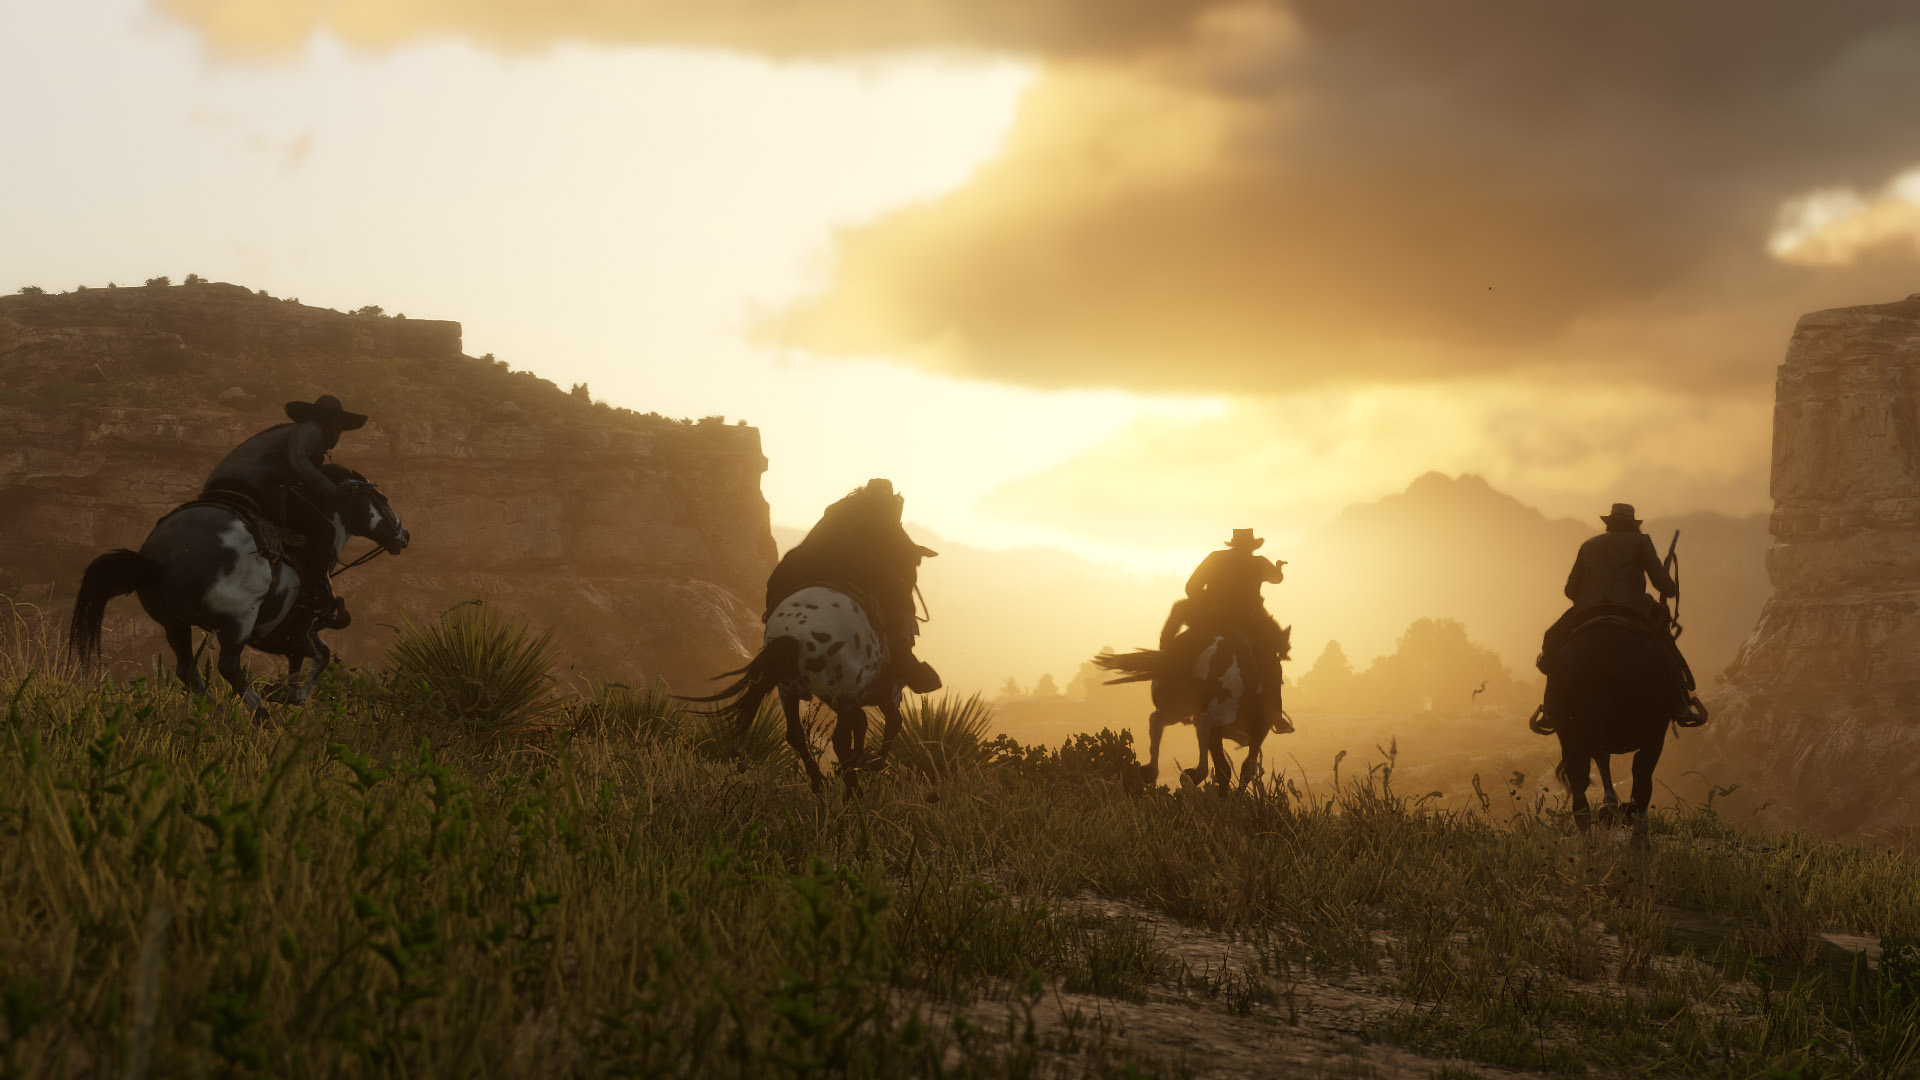 Red Dead Redemption 2 May Take a While to Install on PS4 - Push Square